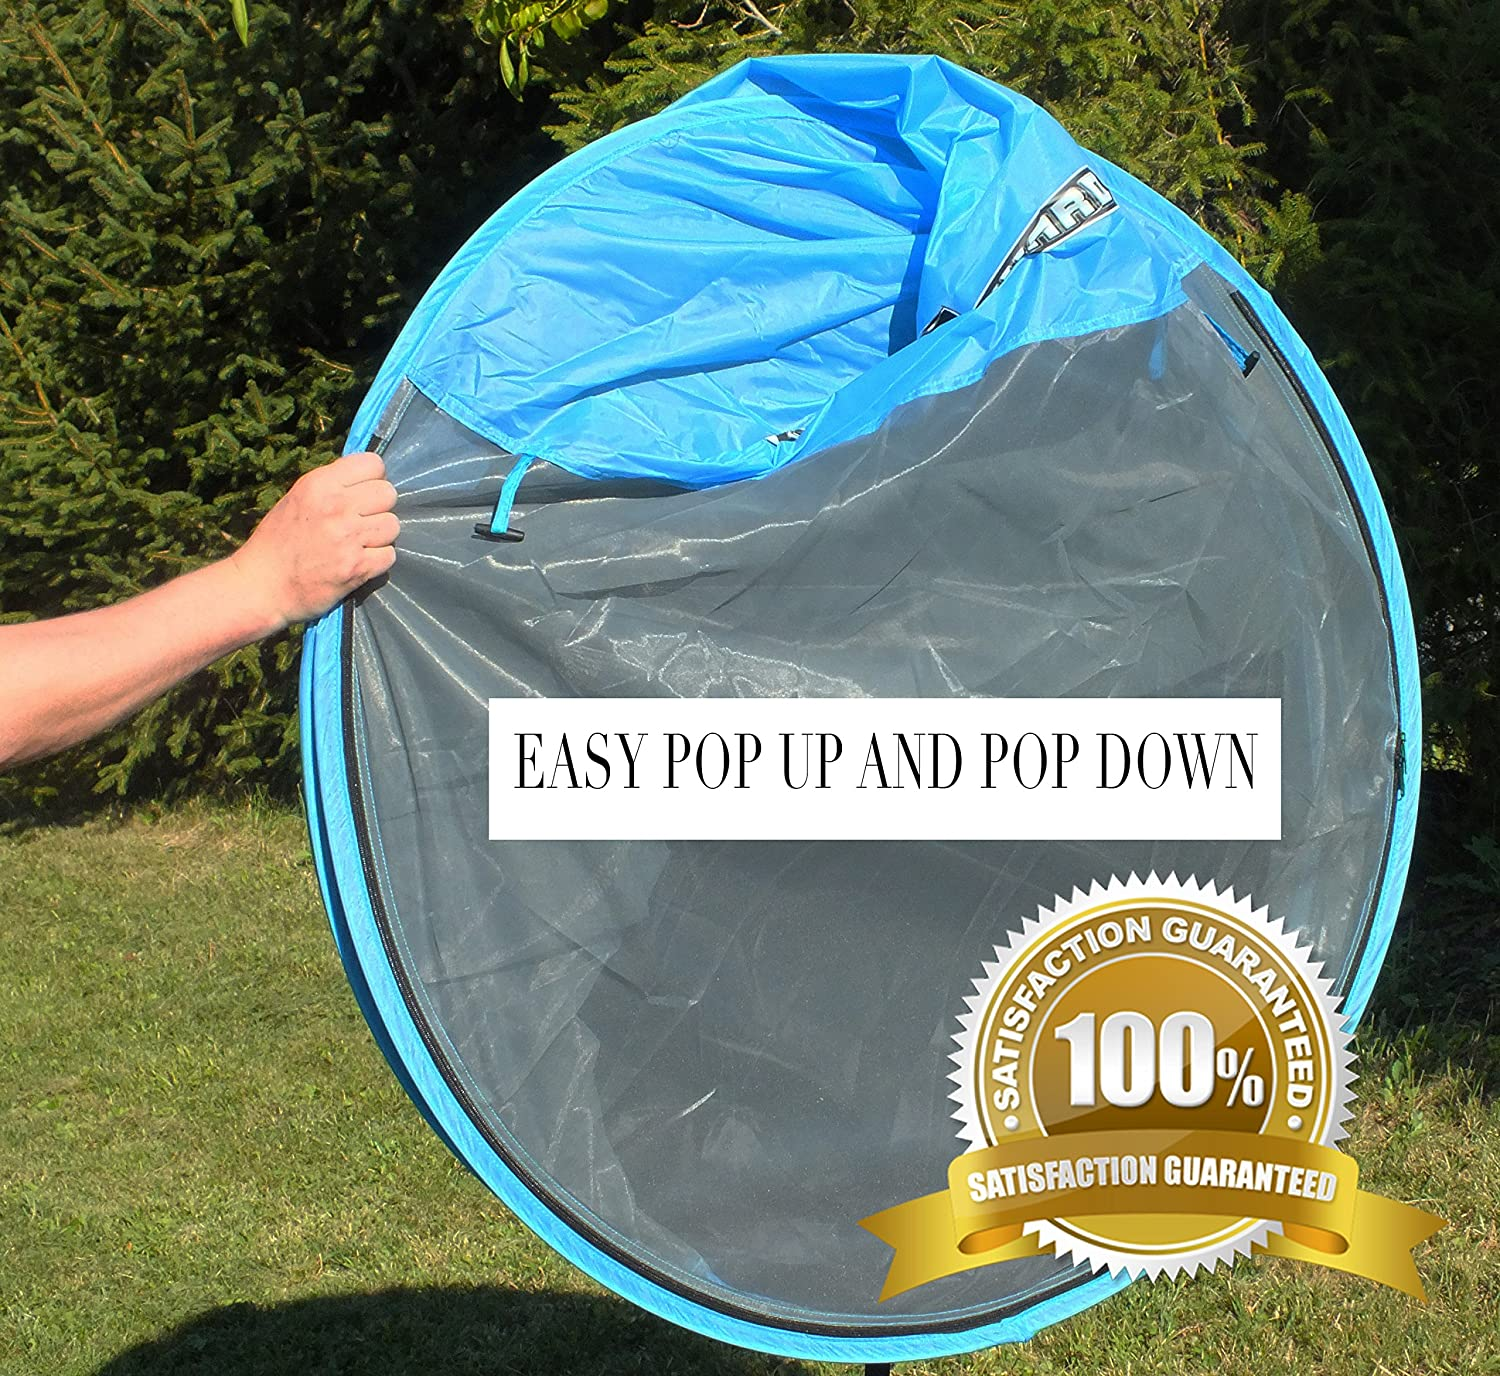 Gnat Guard Skyview Free-Standing Pop-Up Mosquito-Net Tent Blue Amazon.in Sports Fitness u0026 Outdoors & Gnat Guard Skyview Free-Standing Pop-Up Mosquito-Net Tent Blue ...